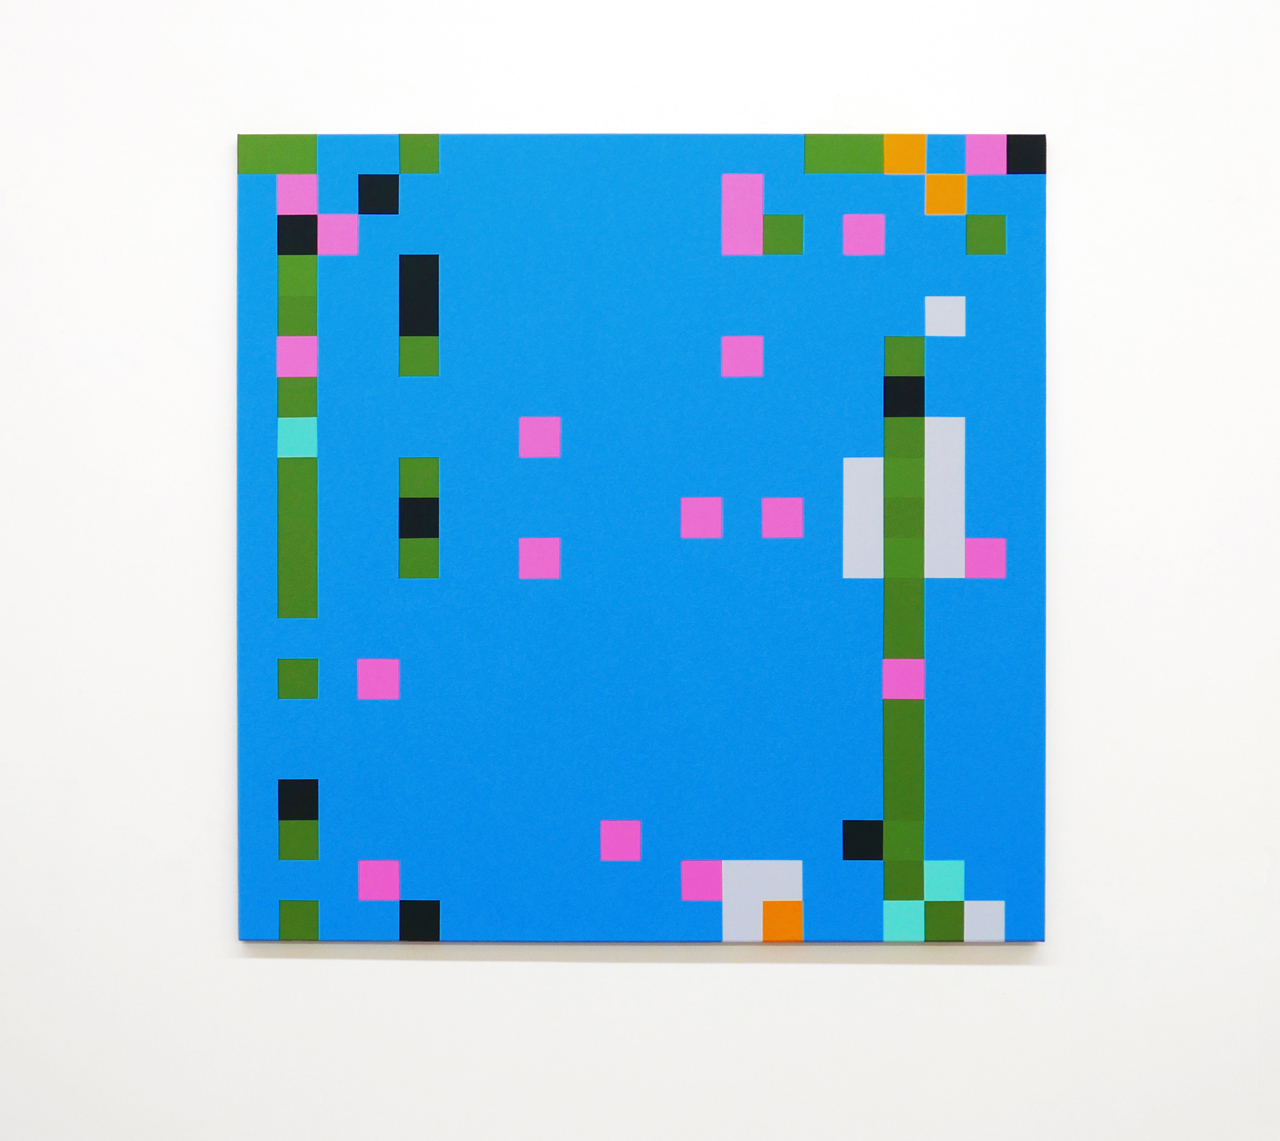 ROBERT OWEN   Out of the Blue #8  2014 - 2016 Synthetic polymer paint on canvas 122 x 122 cm